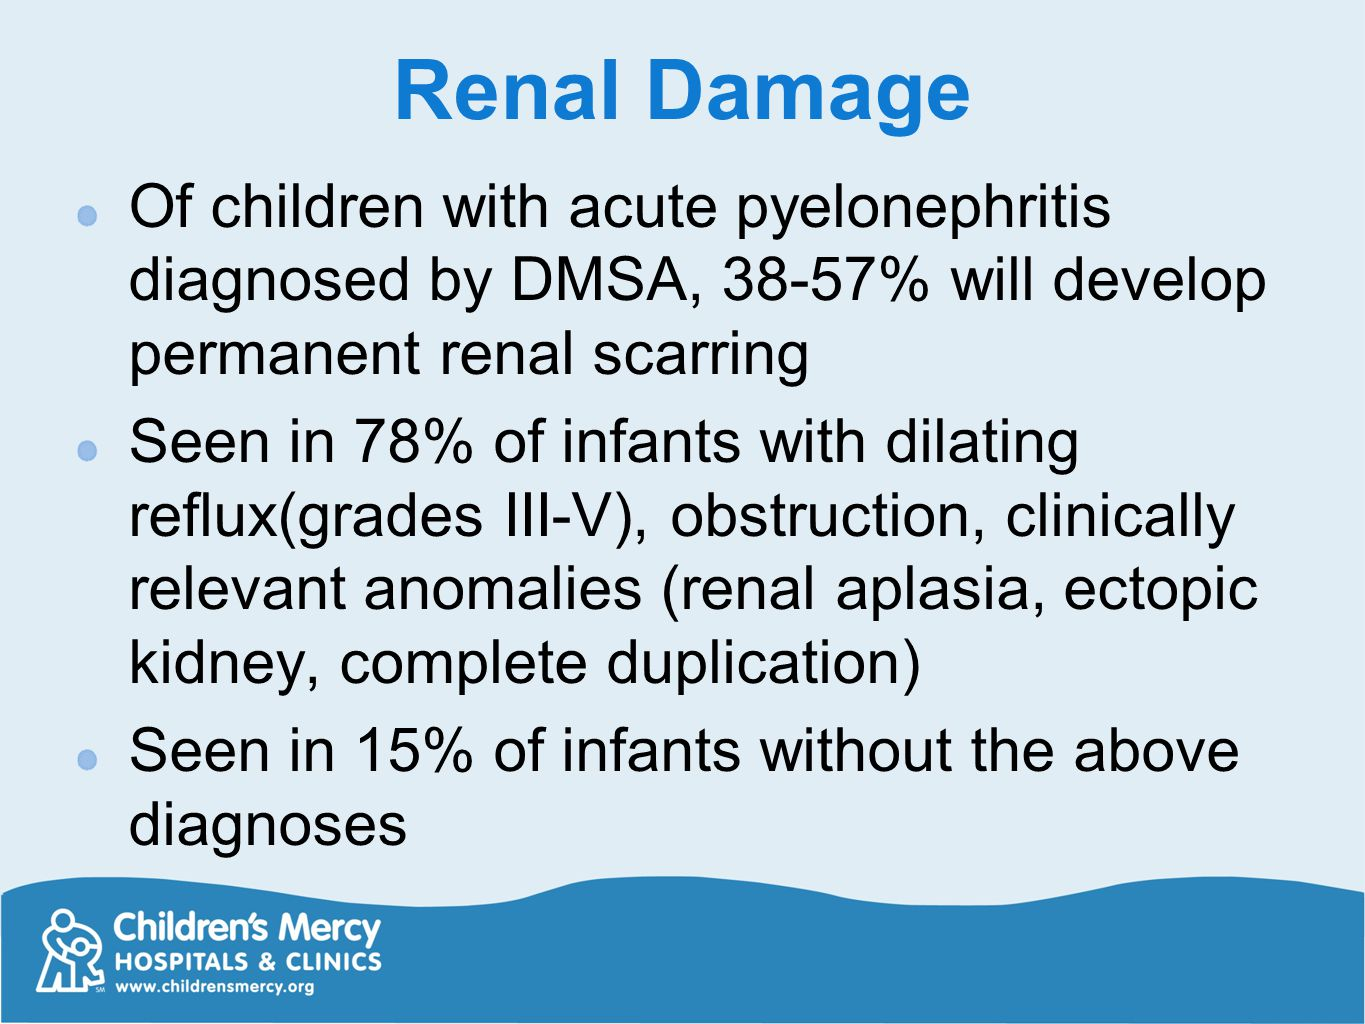 Renal Damage Of children with acute pyelonephritis diagnosed by DMSA, 38-57% will develop permanent renal scarring.